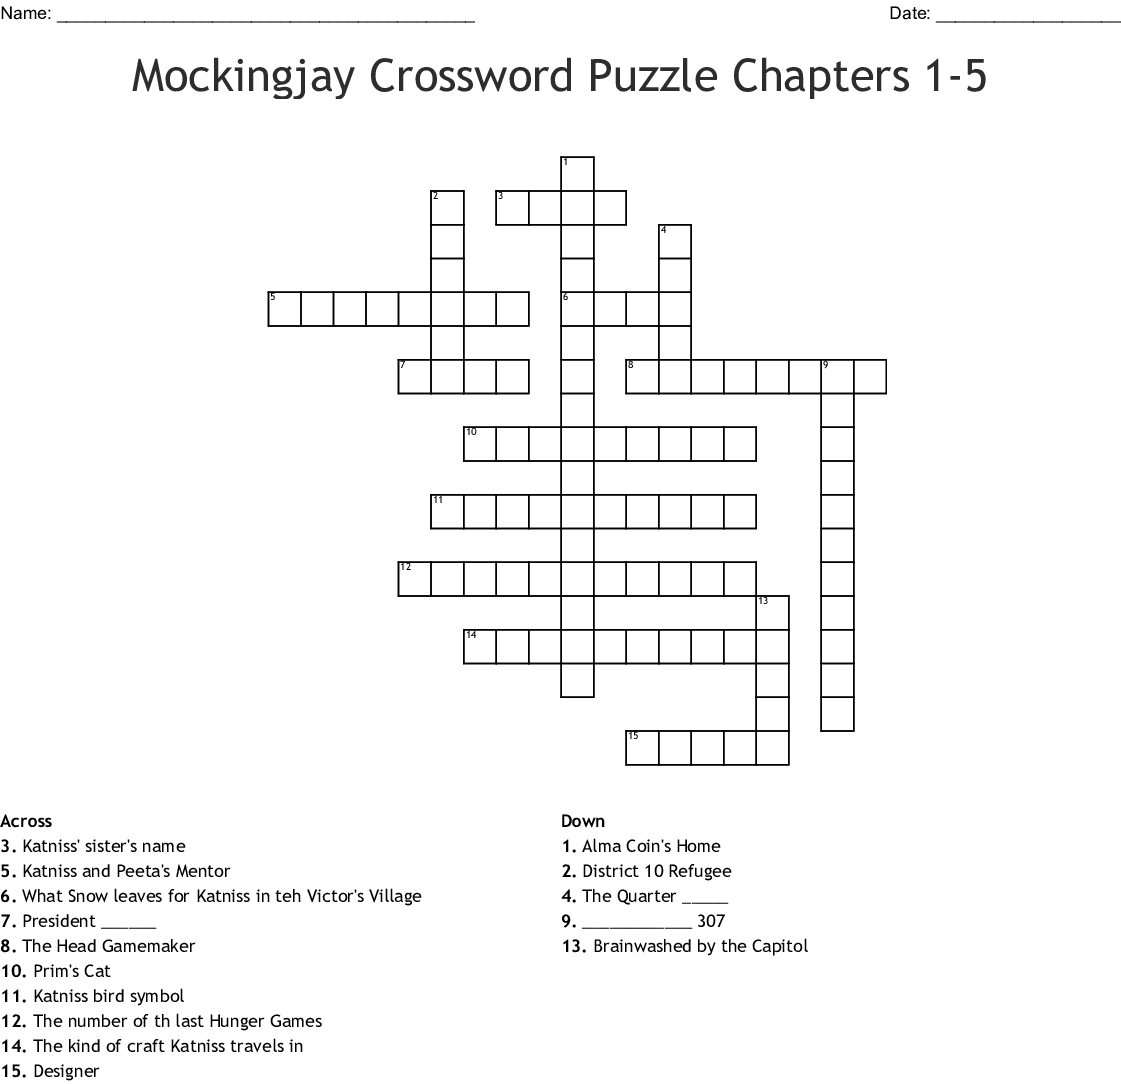 Mockingjay Crossword Puzzle Chapters 1-5 Crossword - Wordmint - Hunger Games Crossword Puzzle Printable